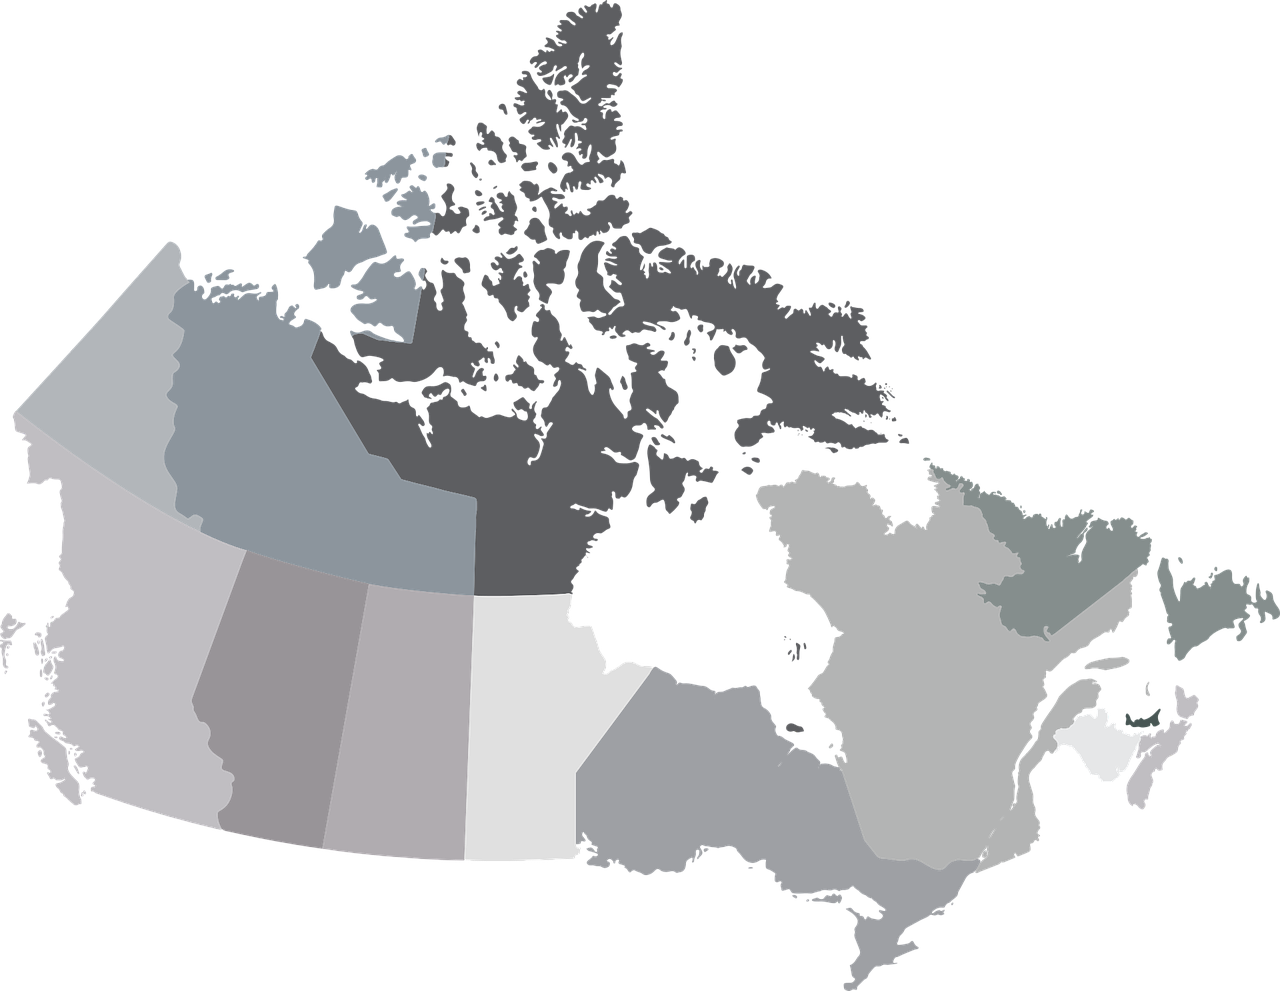 map canada provinces free photo